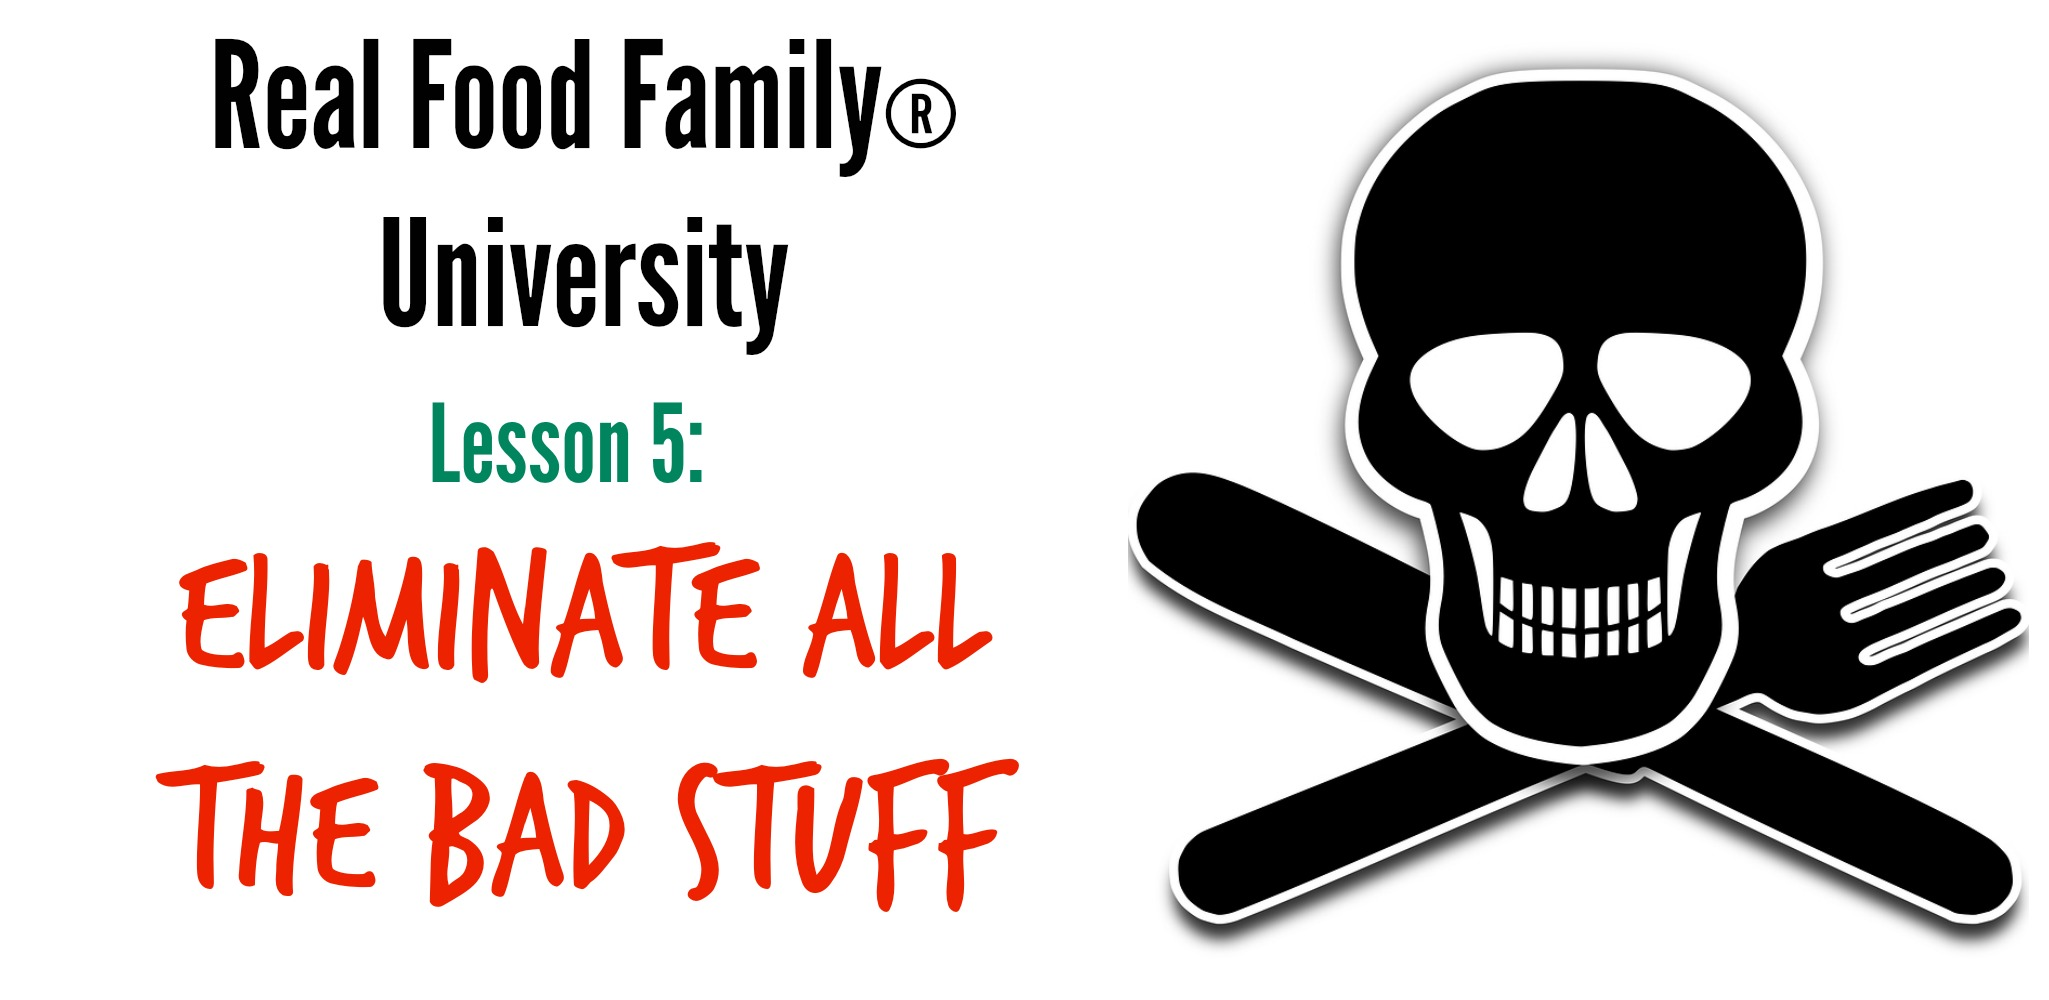 Real Food Family University Lesson 5: Eliminate ALL The Bad Stuff